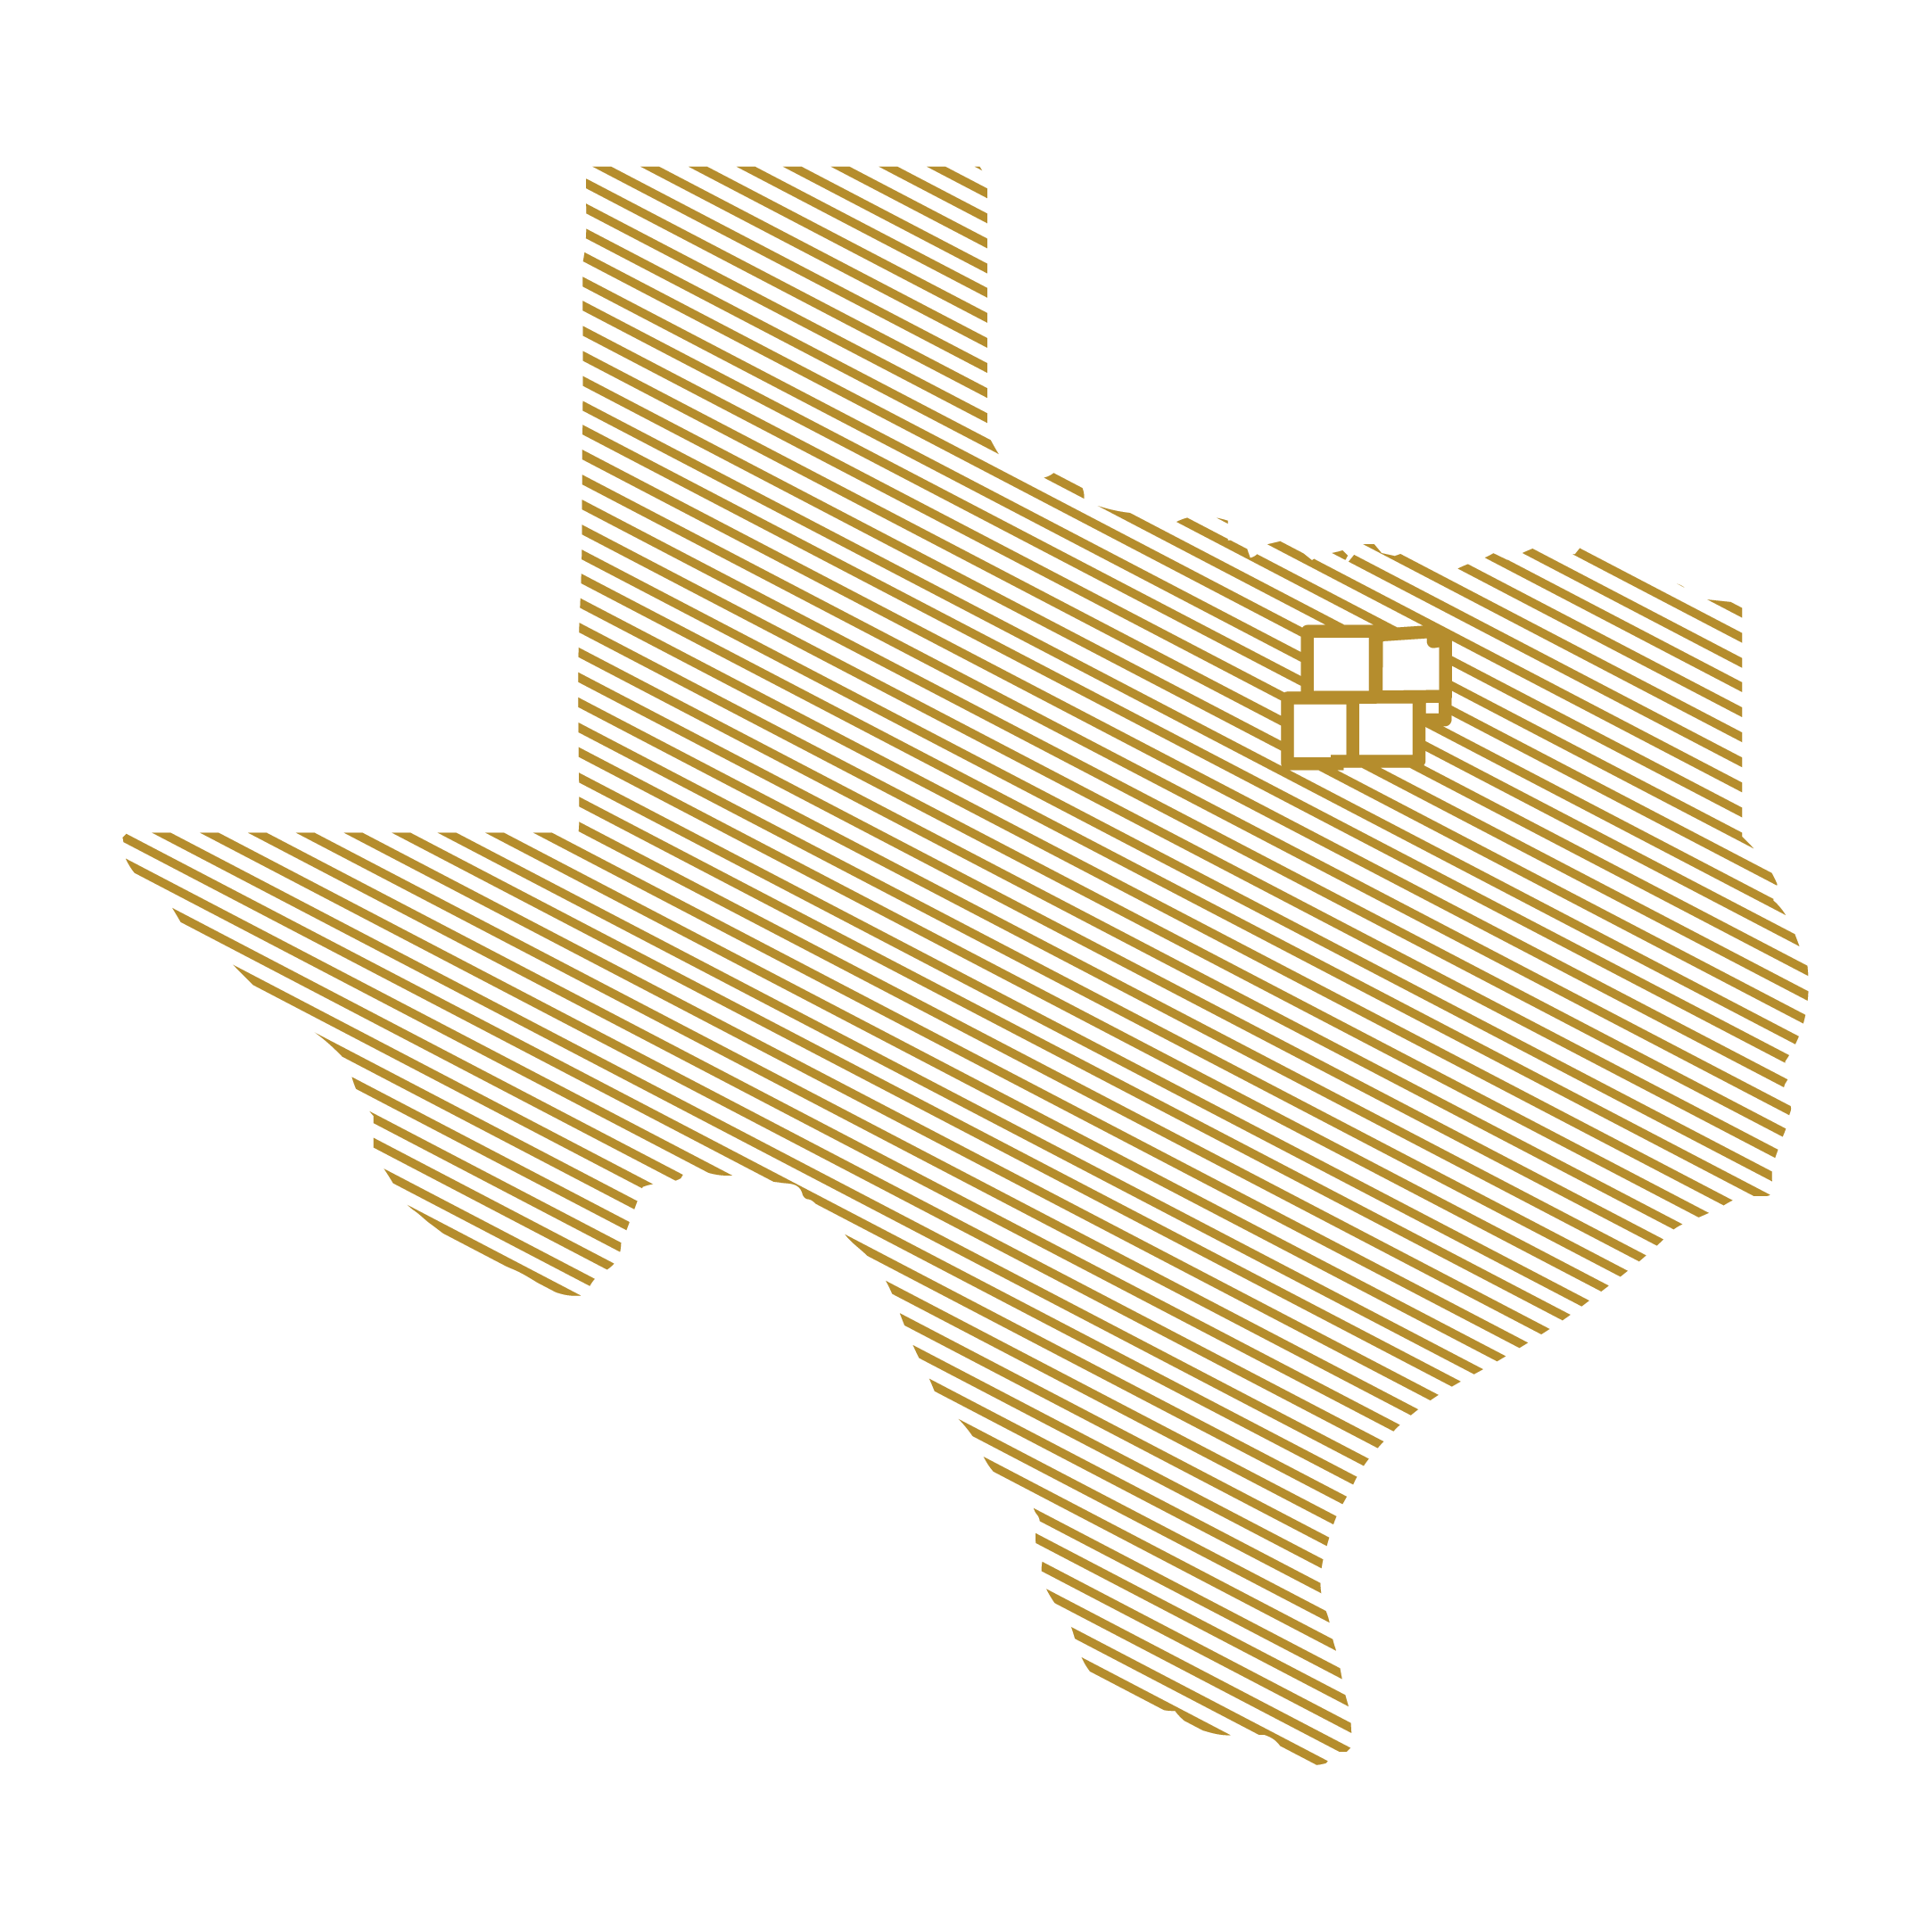 North Texas County Maps